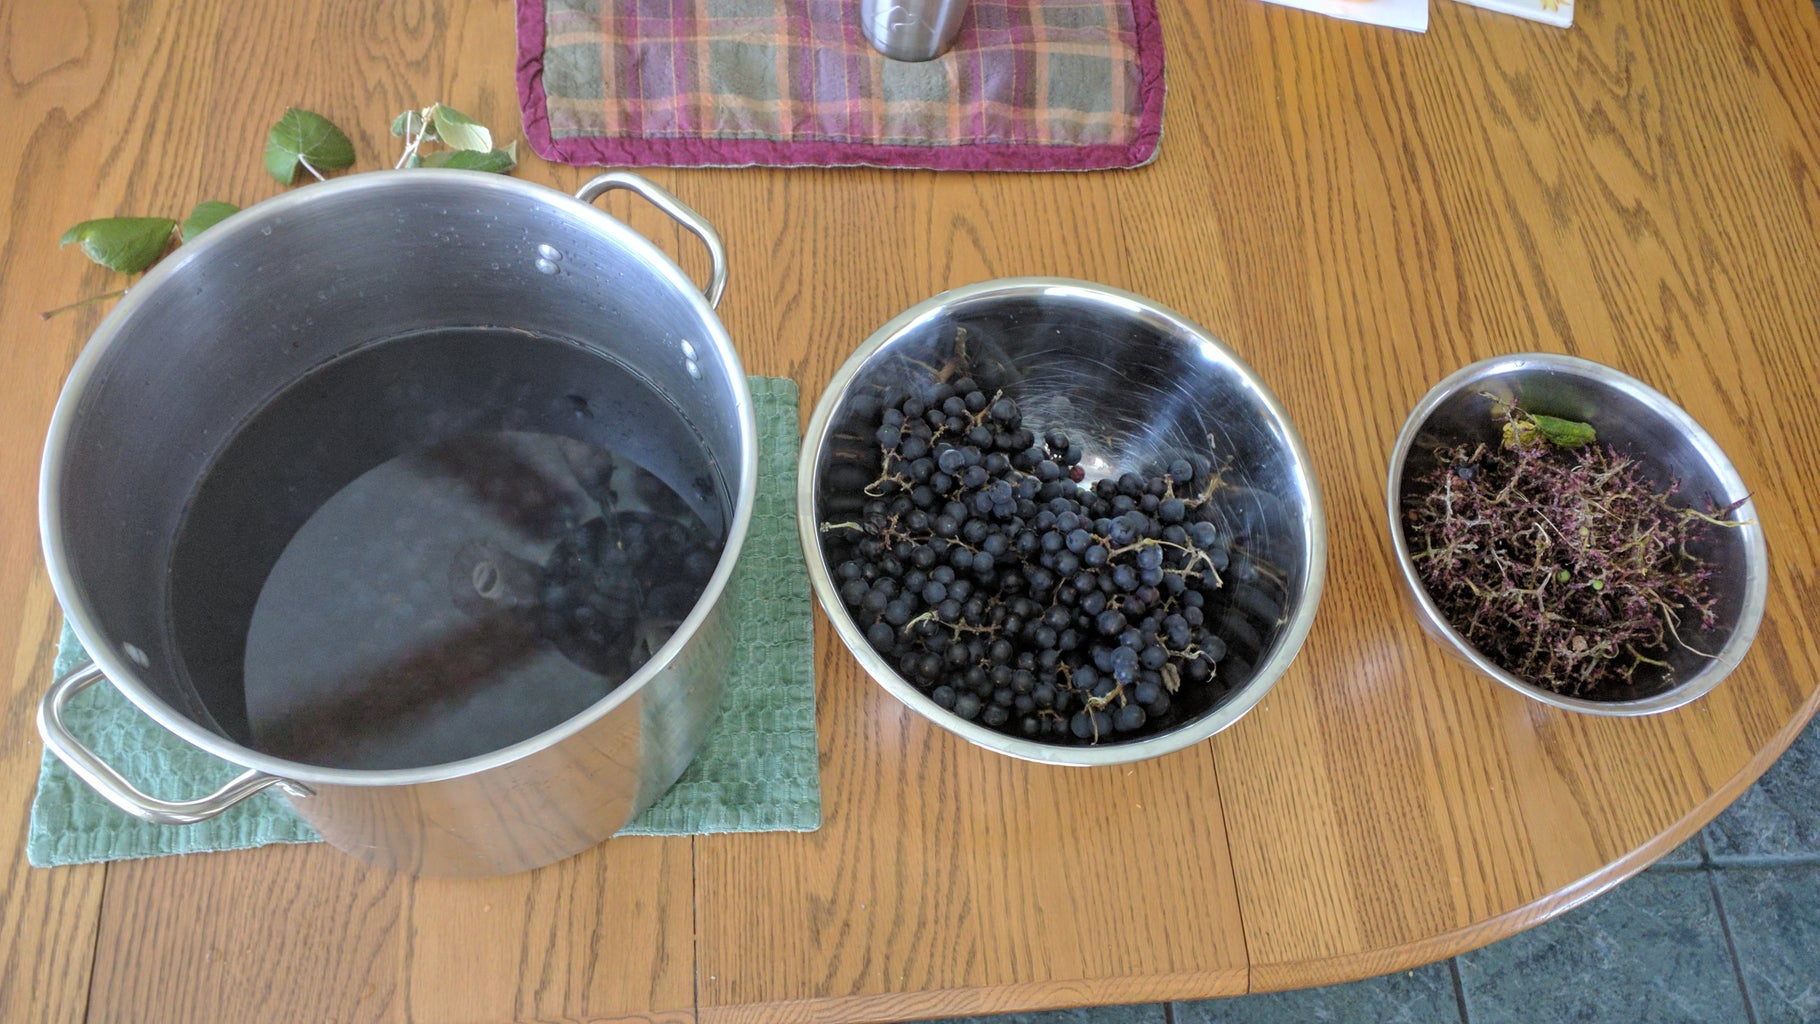 Preparing the Grapes to Extract the Juice